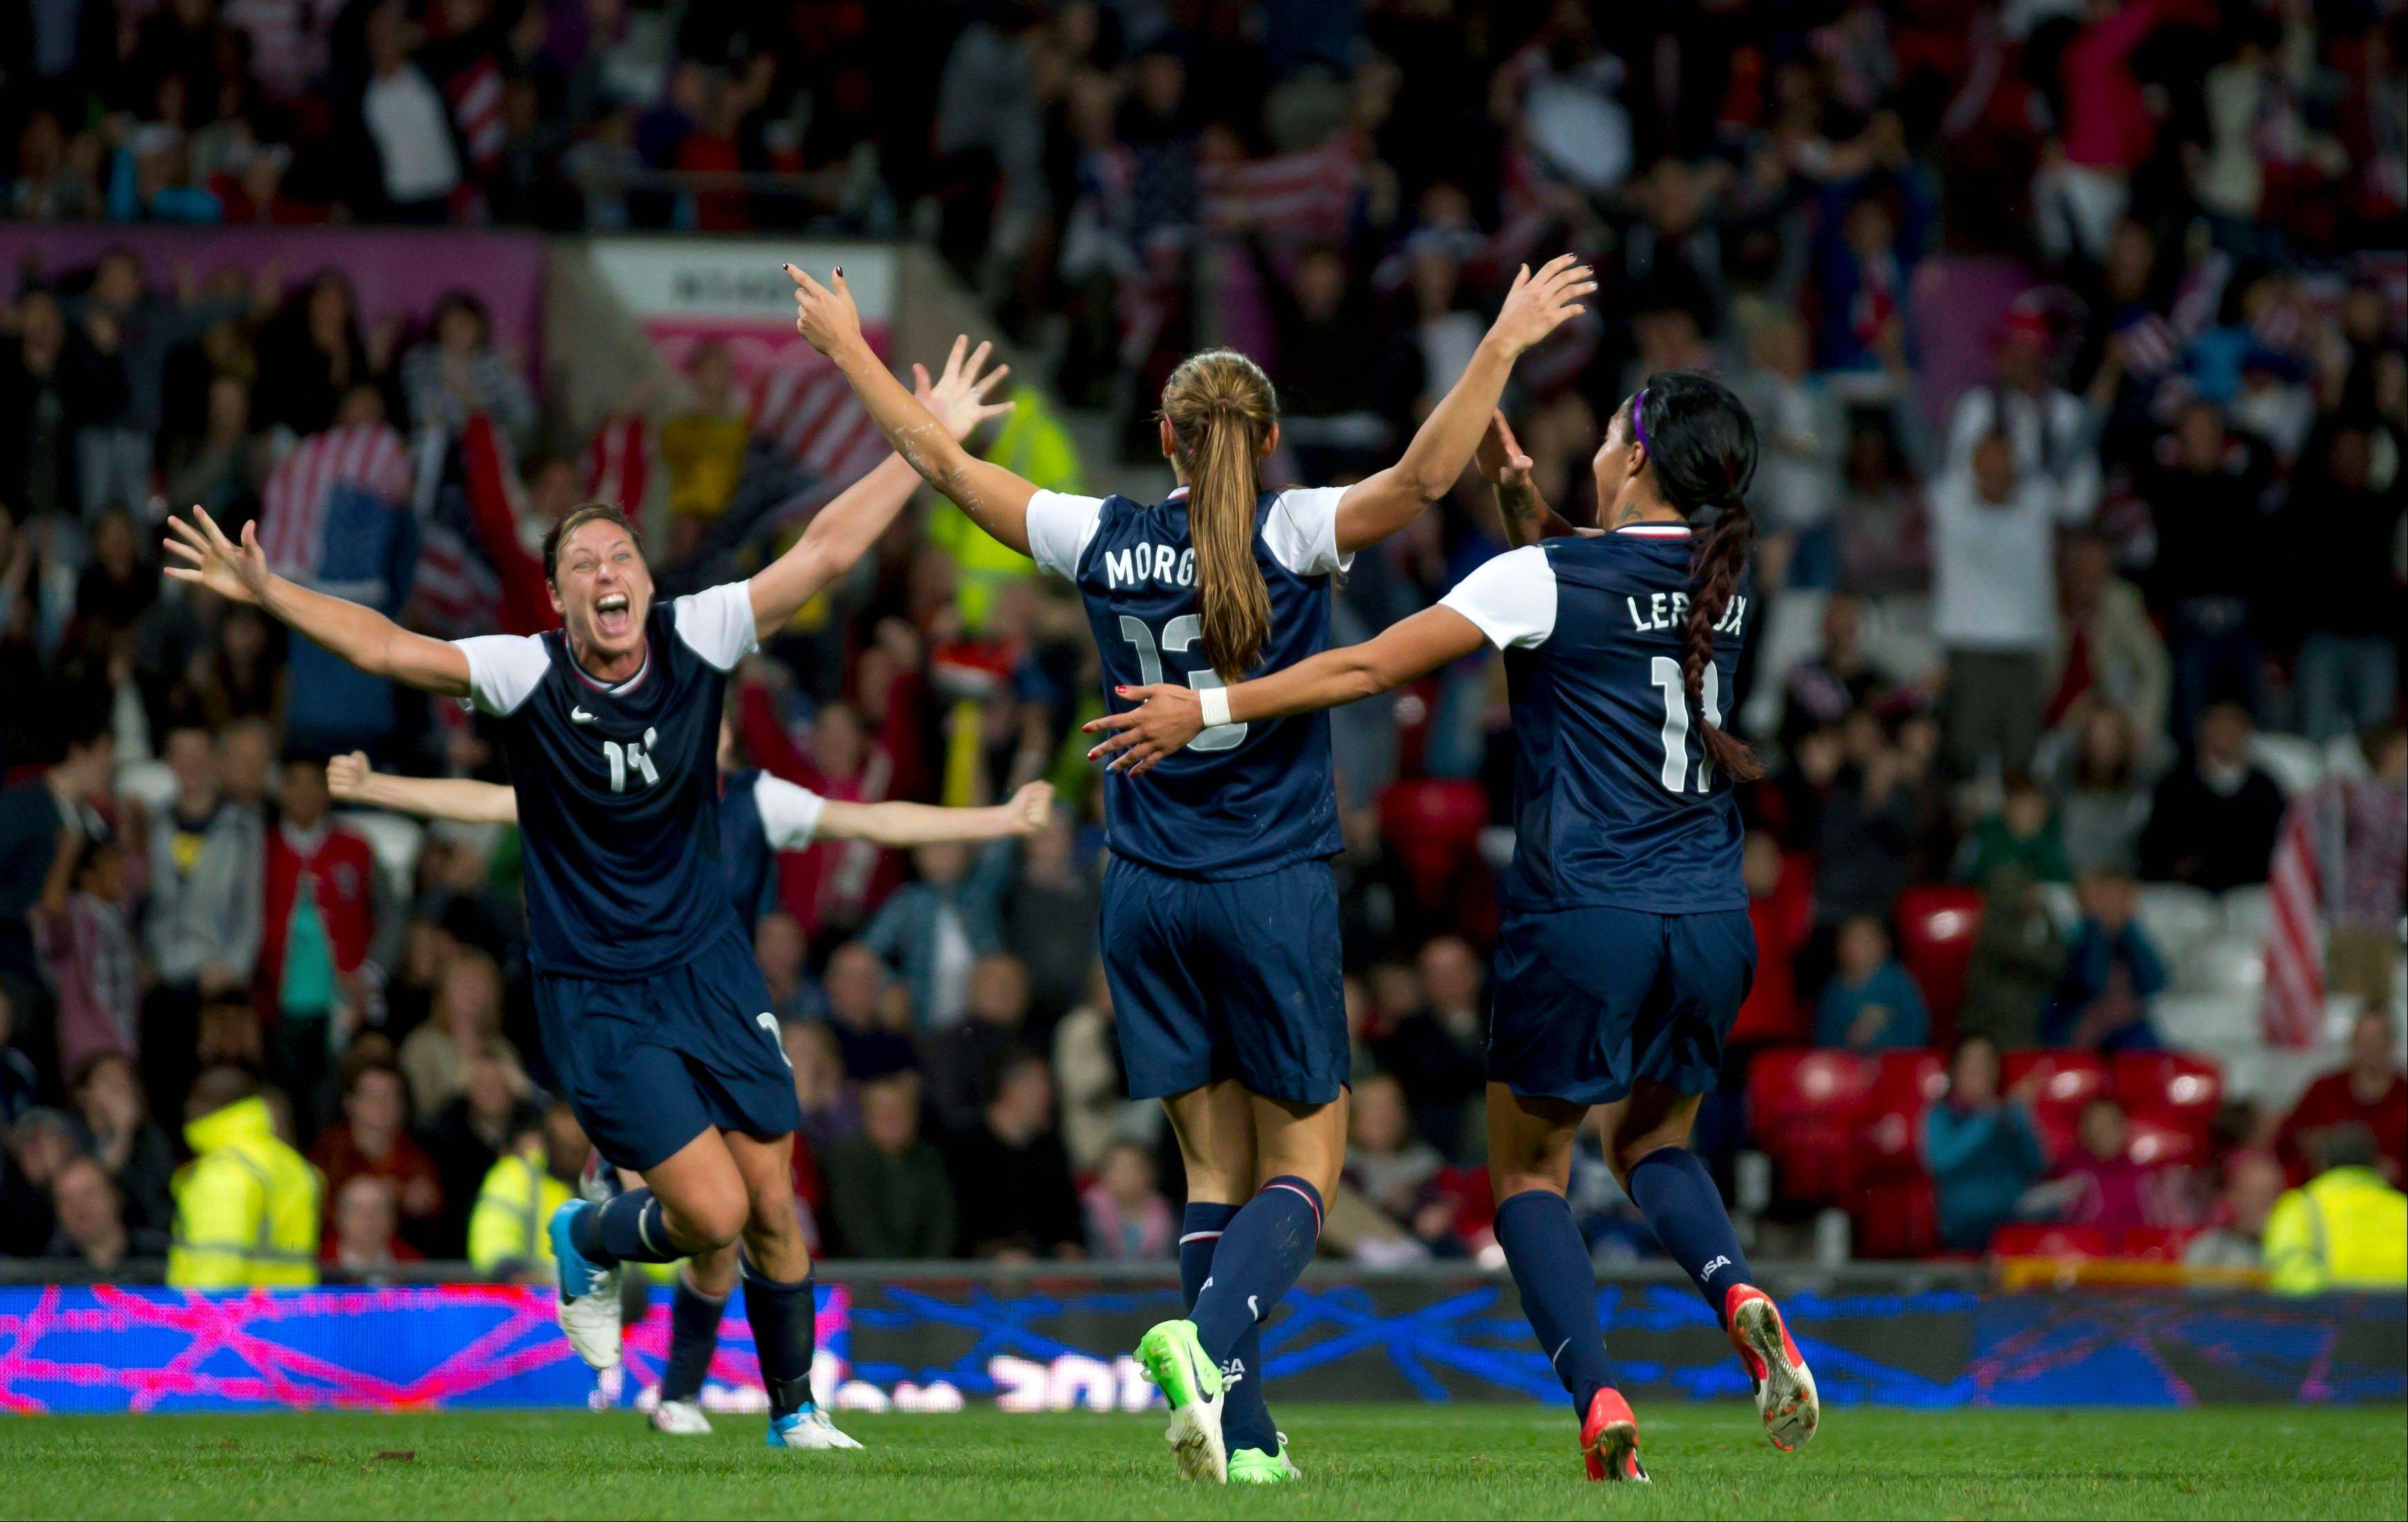 United States' Alex Morgan, center, celebrates with teammates including Abby Wambach, left, and Sydney Leroux after the winning goal was scored past Canada's goalkeeper Erin Mcleod during their semifinal women's soccer match Monday at the 2012 London Summer Olympics, at Old Trafford Stadium in Manchester, England.